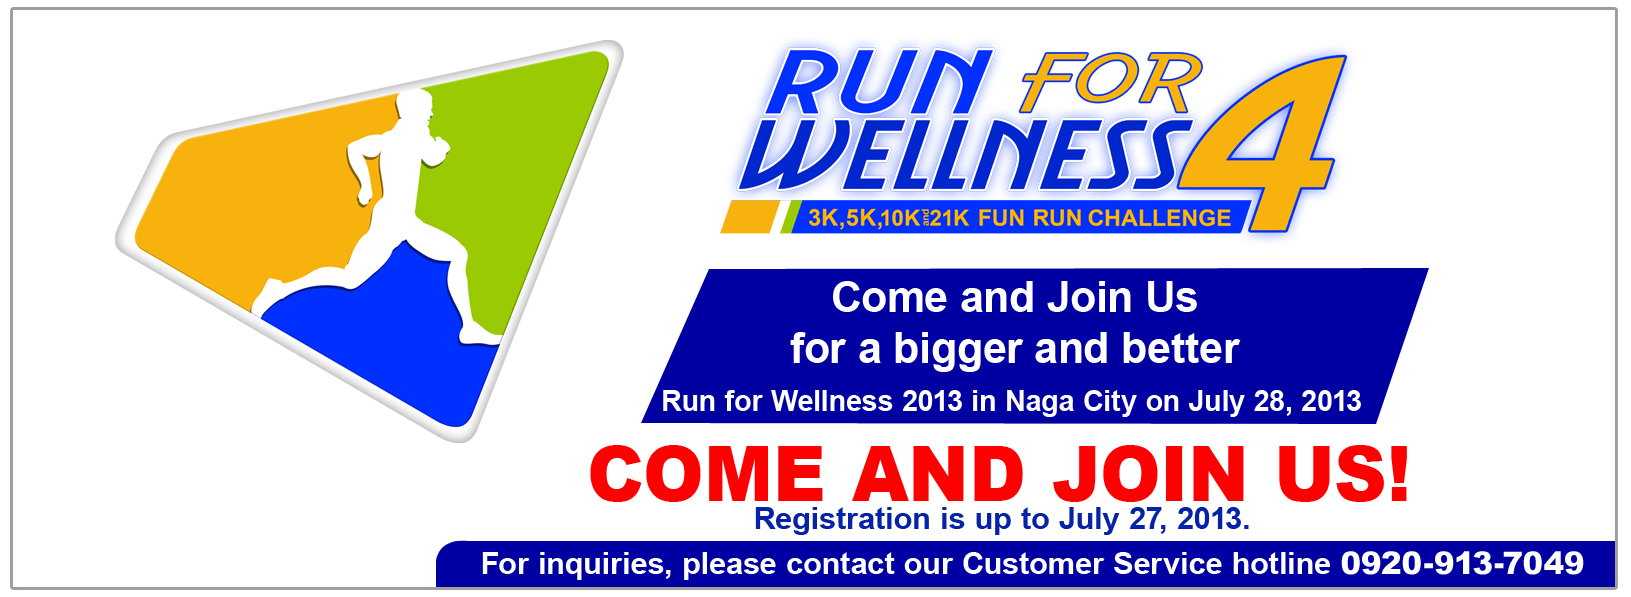 south-star-run-for-wellness-2013-poster